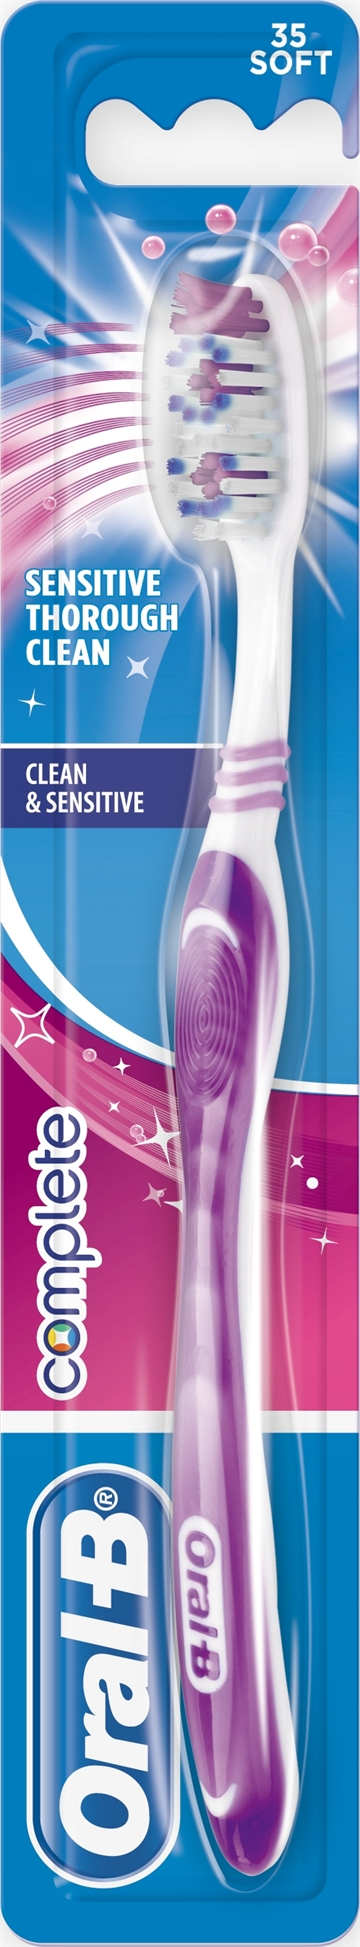 Oral-B Complete Clean & Sensitive Toothbrush